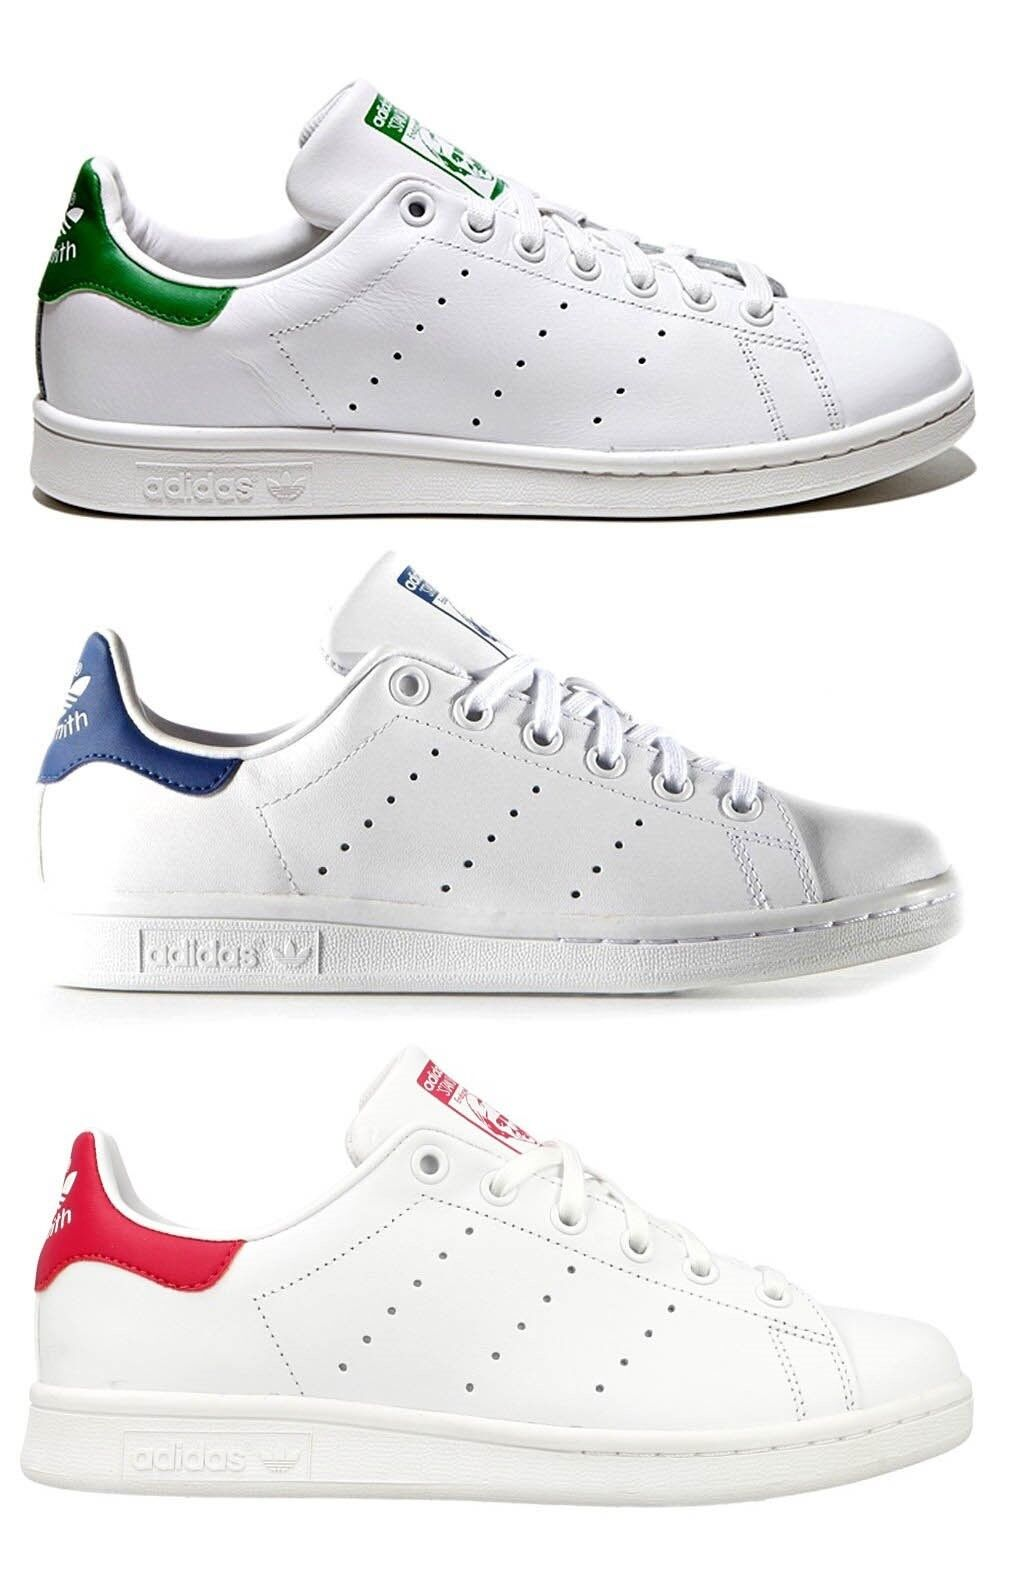 ADIDAS STAN SMITH J femme chaussures sport baskets cuir blanc casual